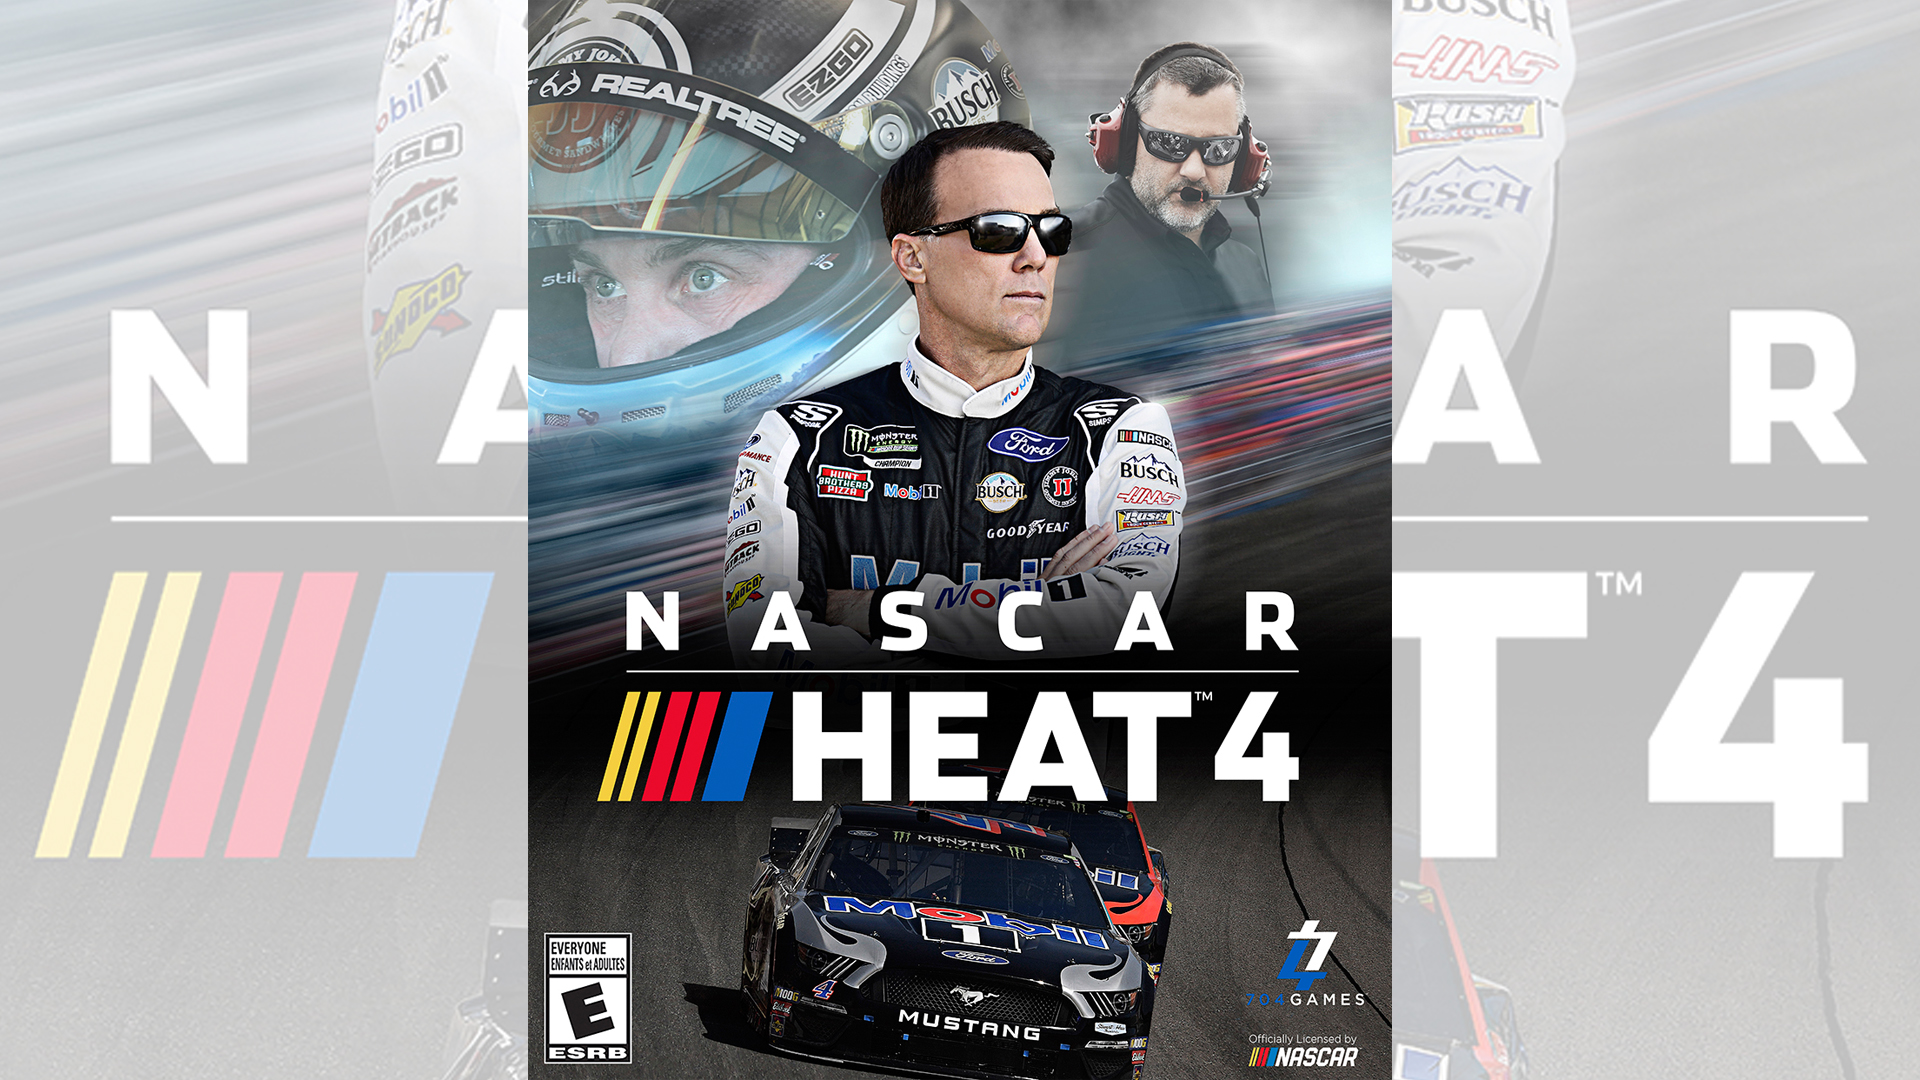 Kevin Harvick's excitement around 'NASCAR Heat 4' cover centers around son Keelan